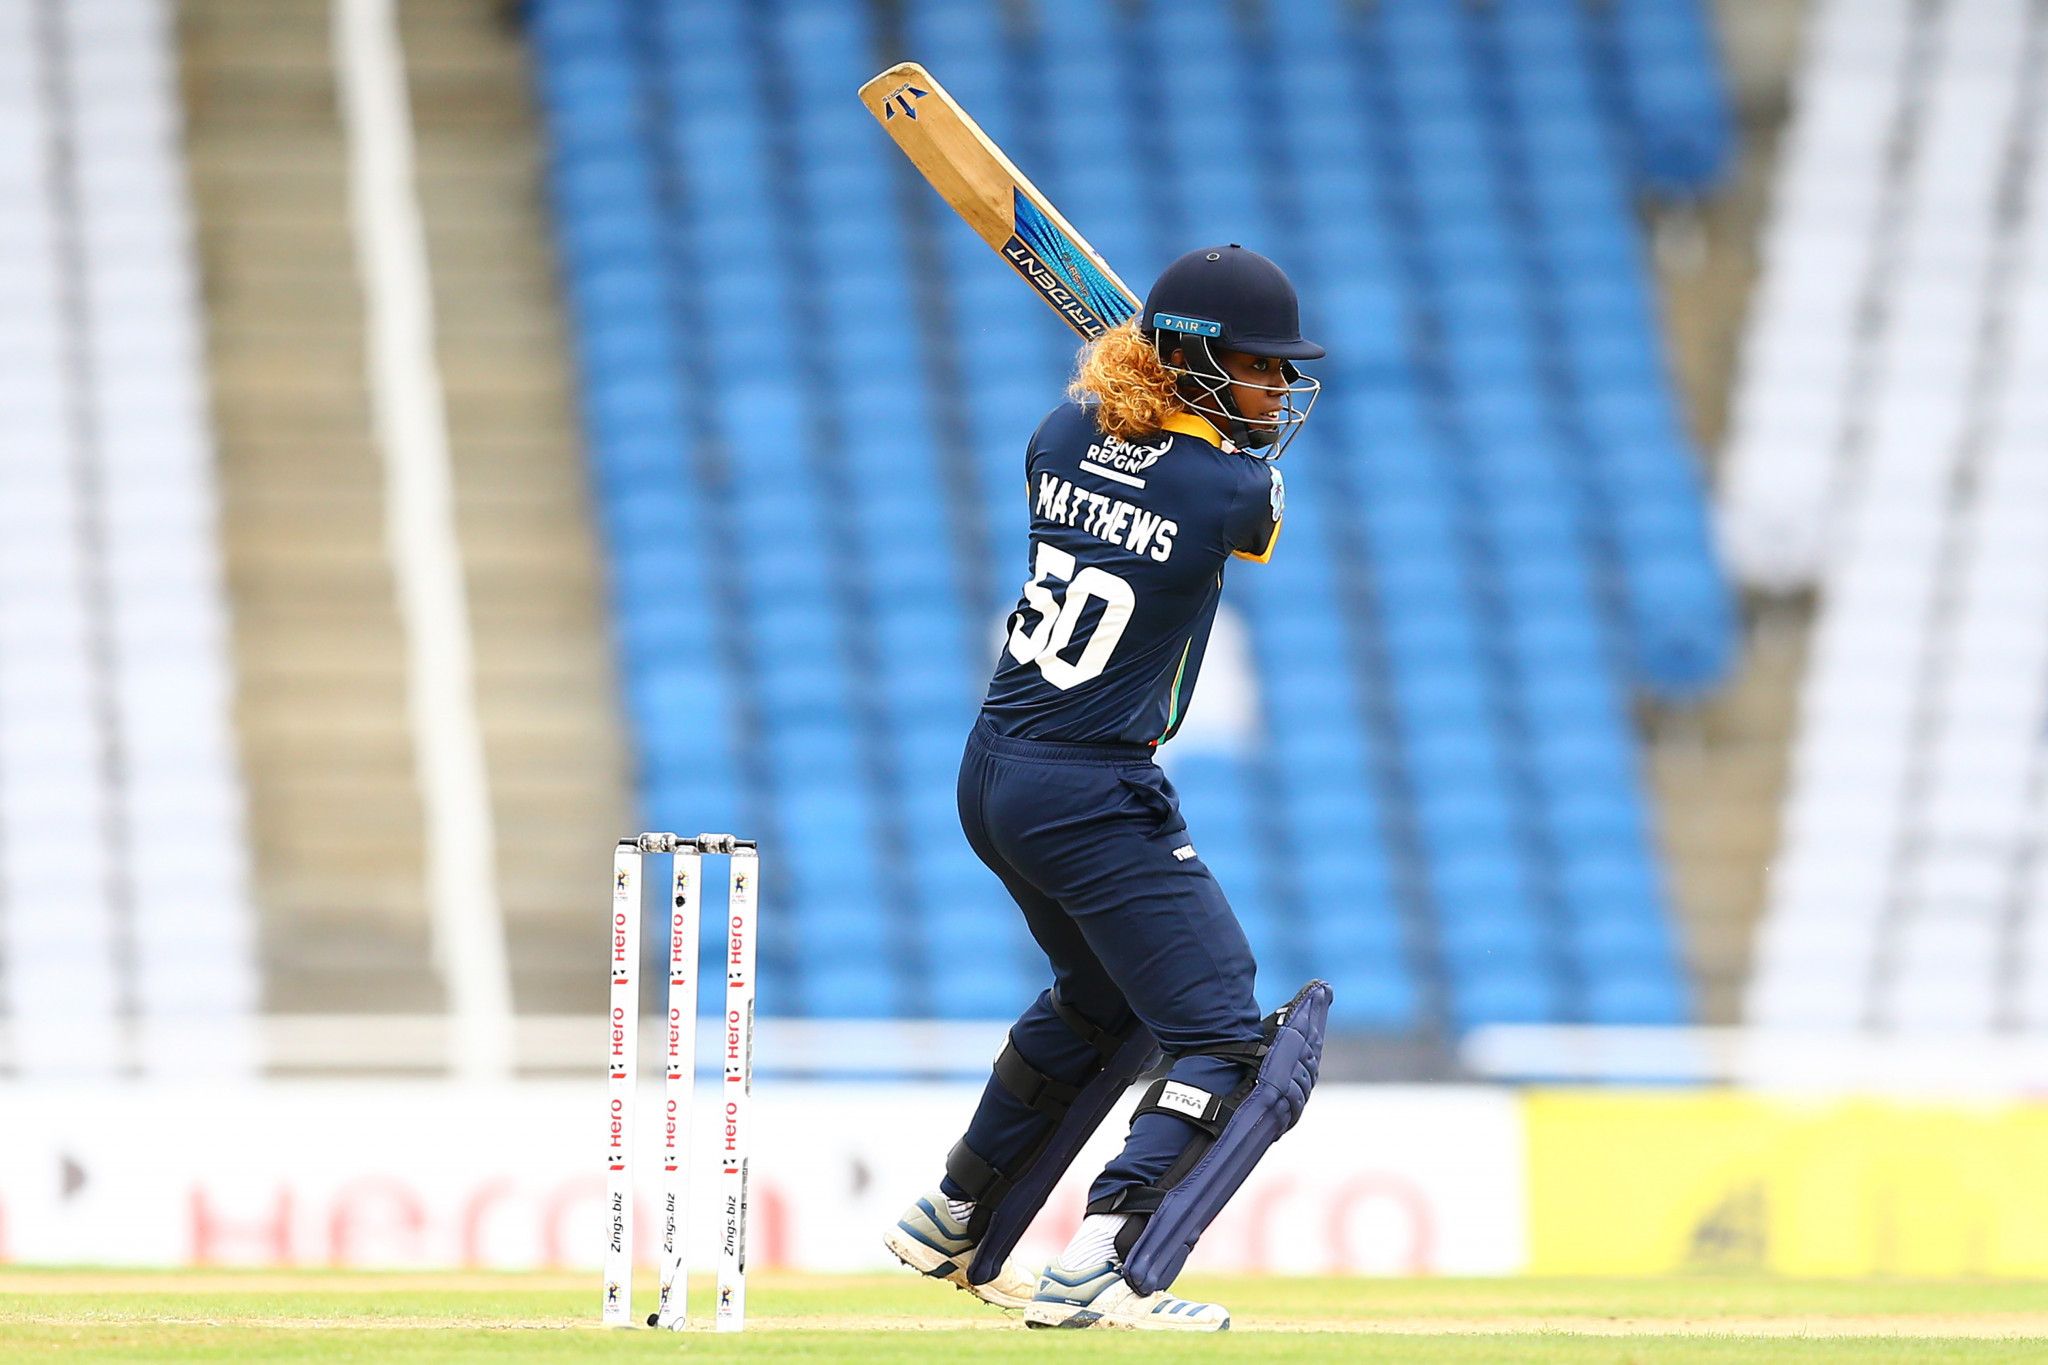 Haroon Lorgat has joined Eoin Morgan in supporting the T10 format - not currently played at international level - for Olympic inclusion ©Getty Images